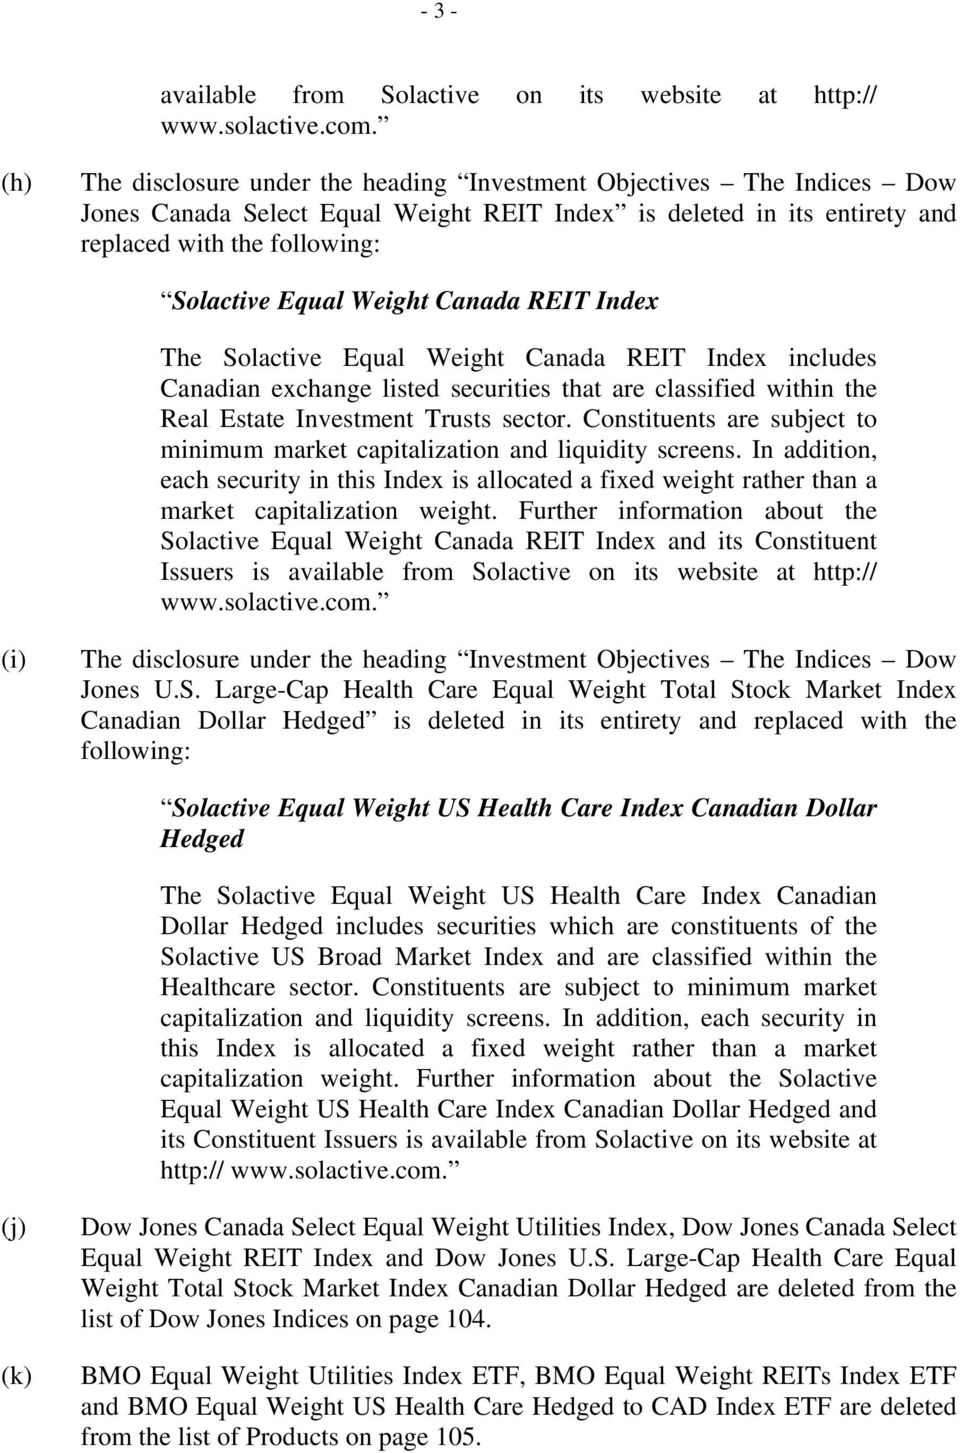 Weight Canada REIT Index The Solactive Equal Weight Canada REIT Index includes Canadian exchange listed securities that are classified within the Real Estate Investment Trusts sector.